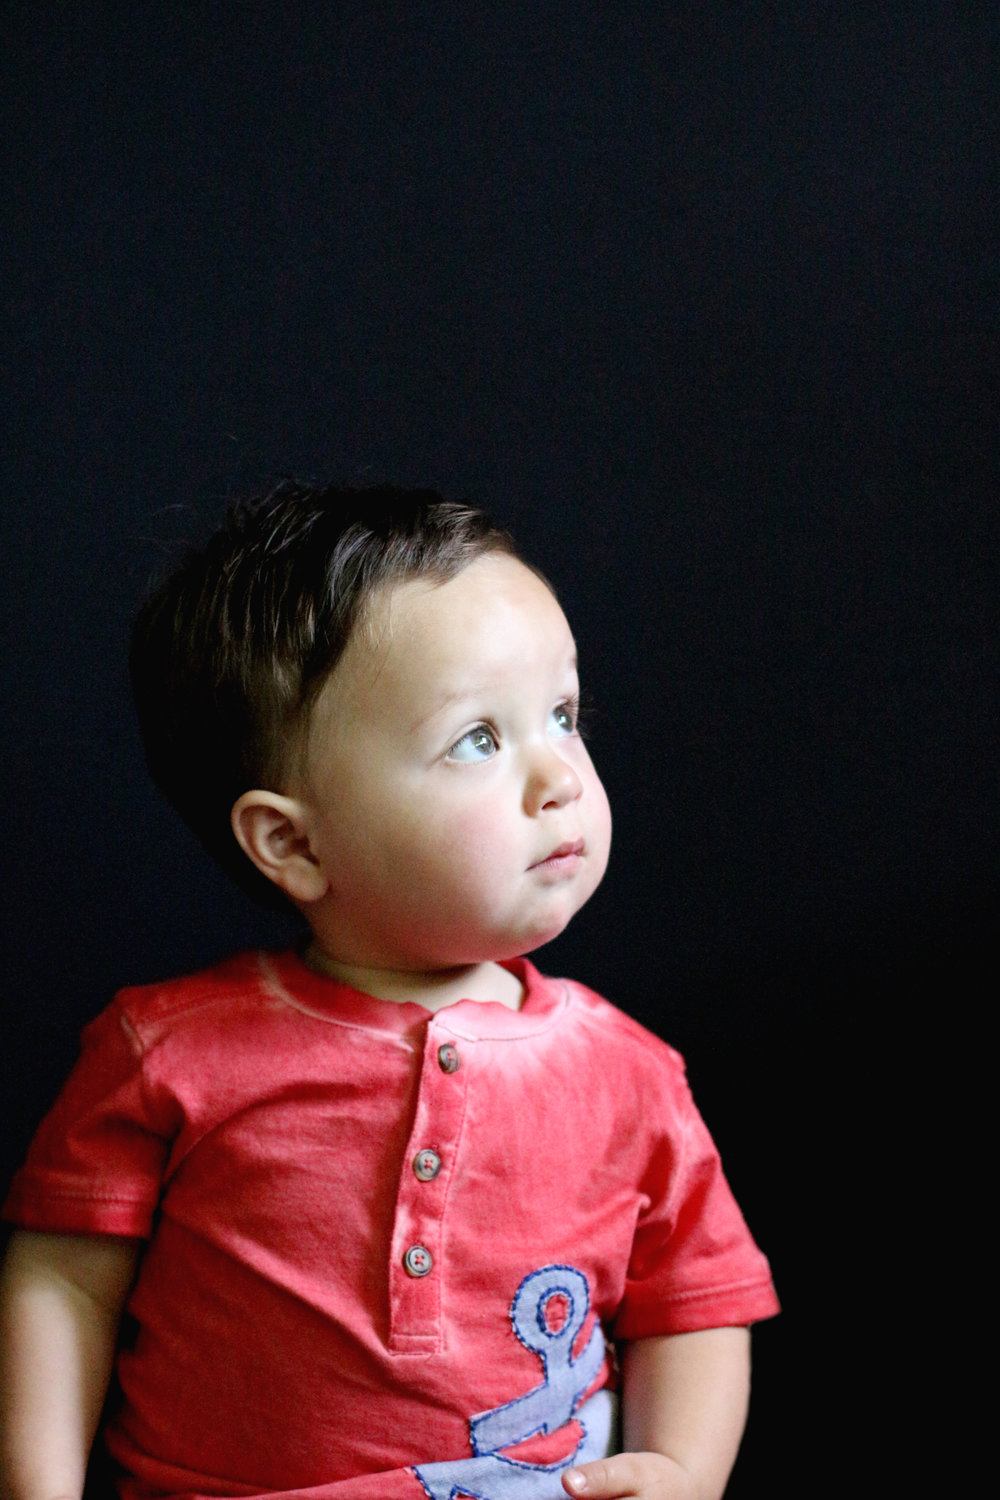 baby in red shirt seattle portrait Heather Barradas photography fine art